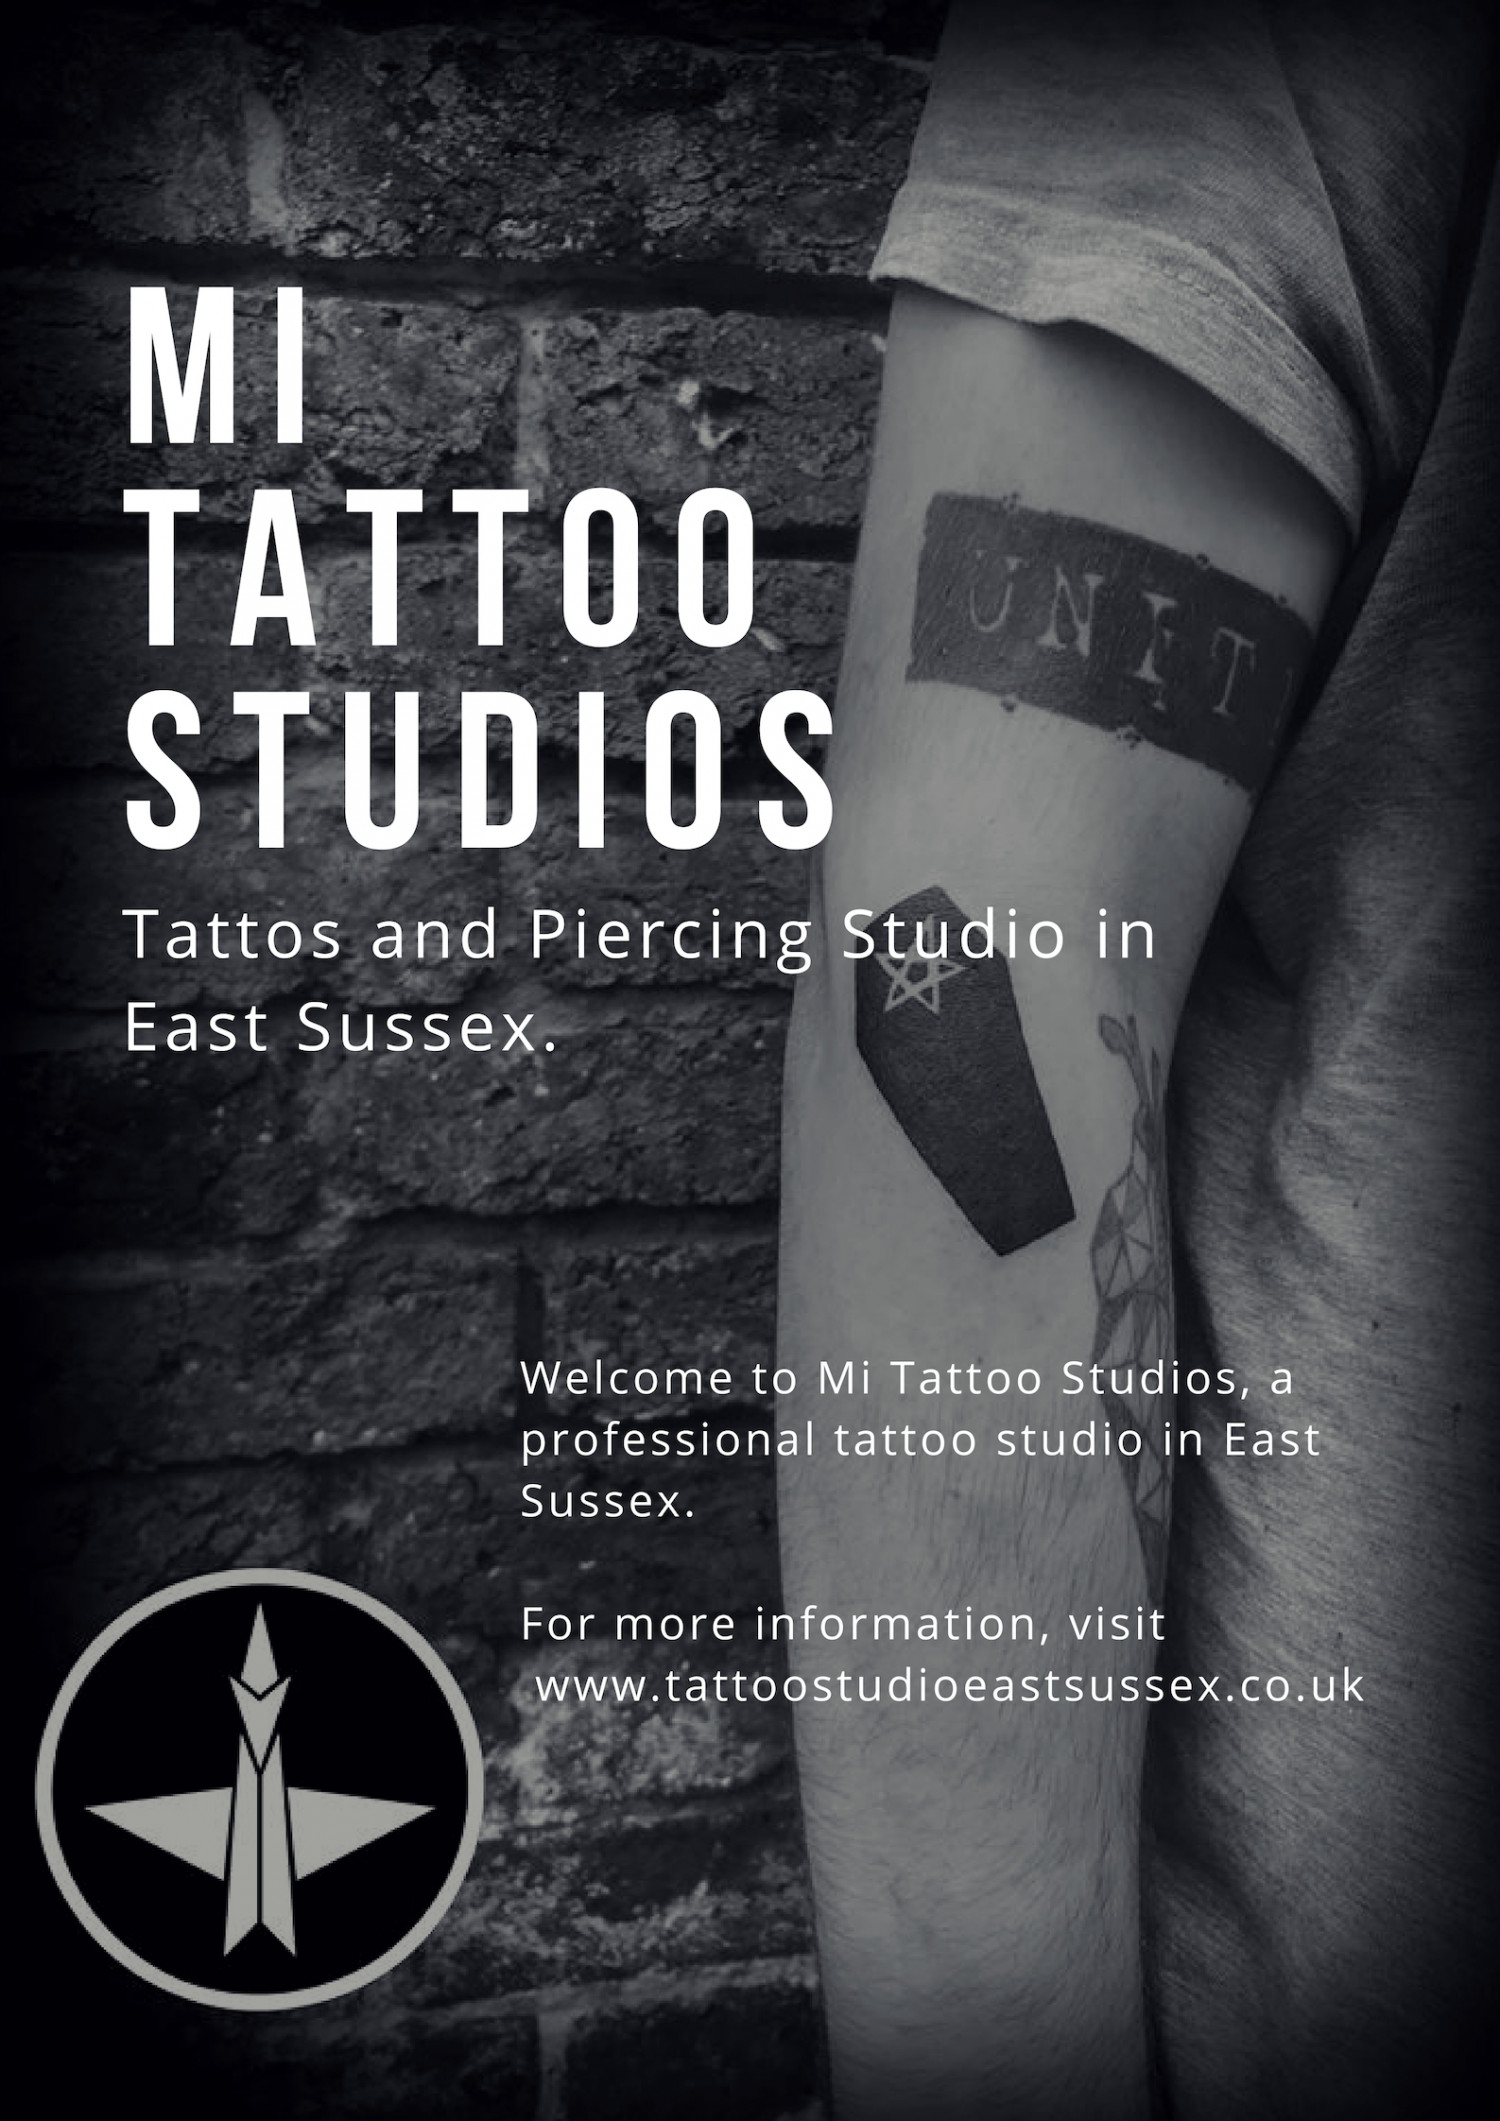 Tattoo Studios in East Sussex Infographic